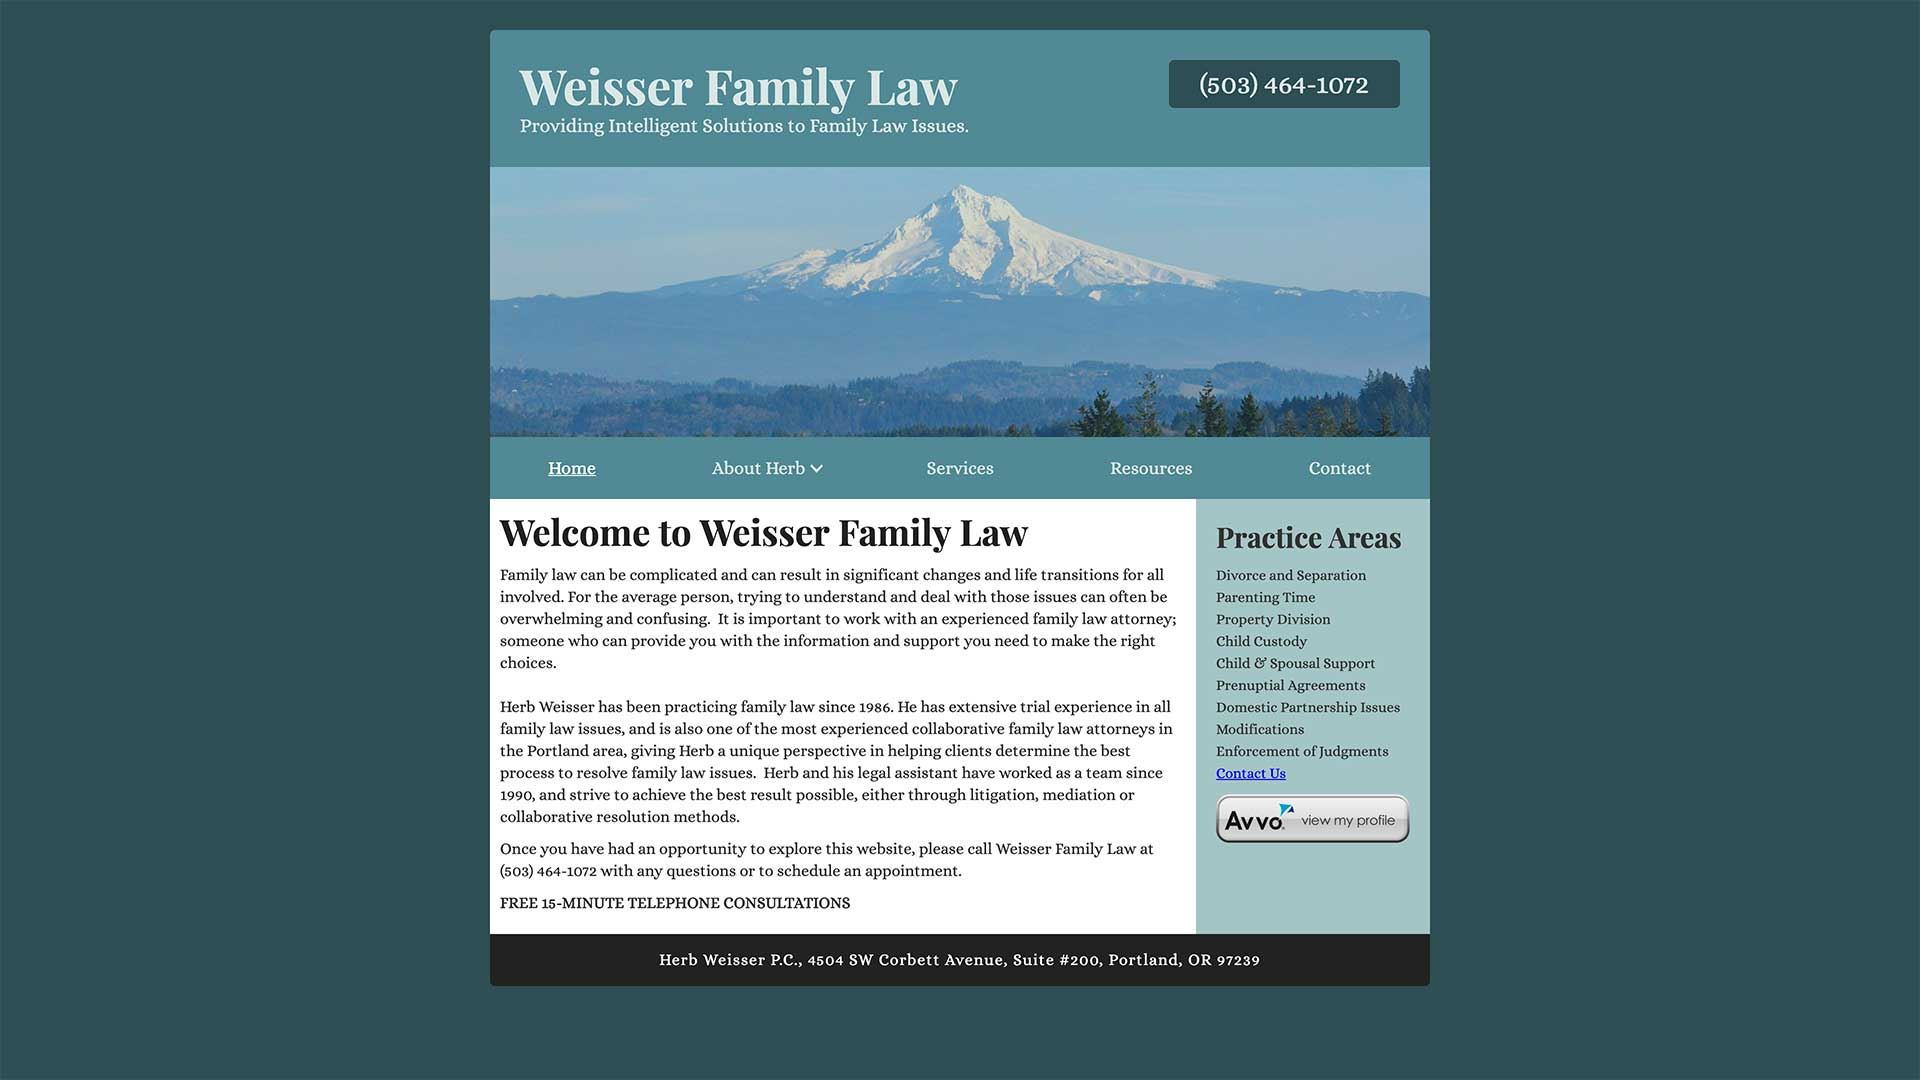 Weisser Family Law